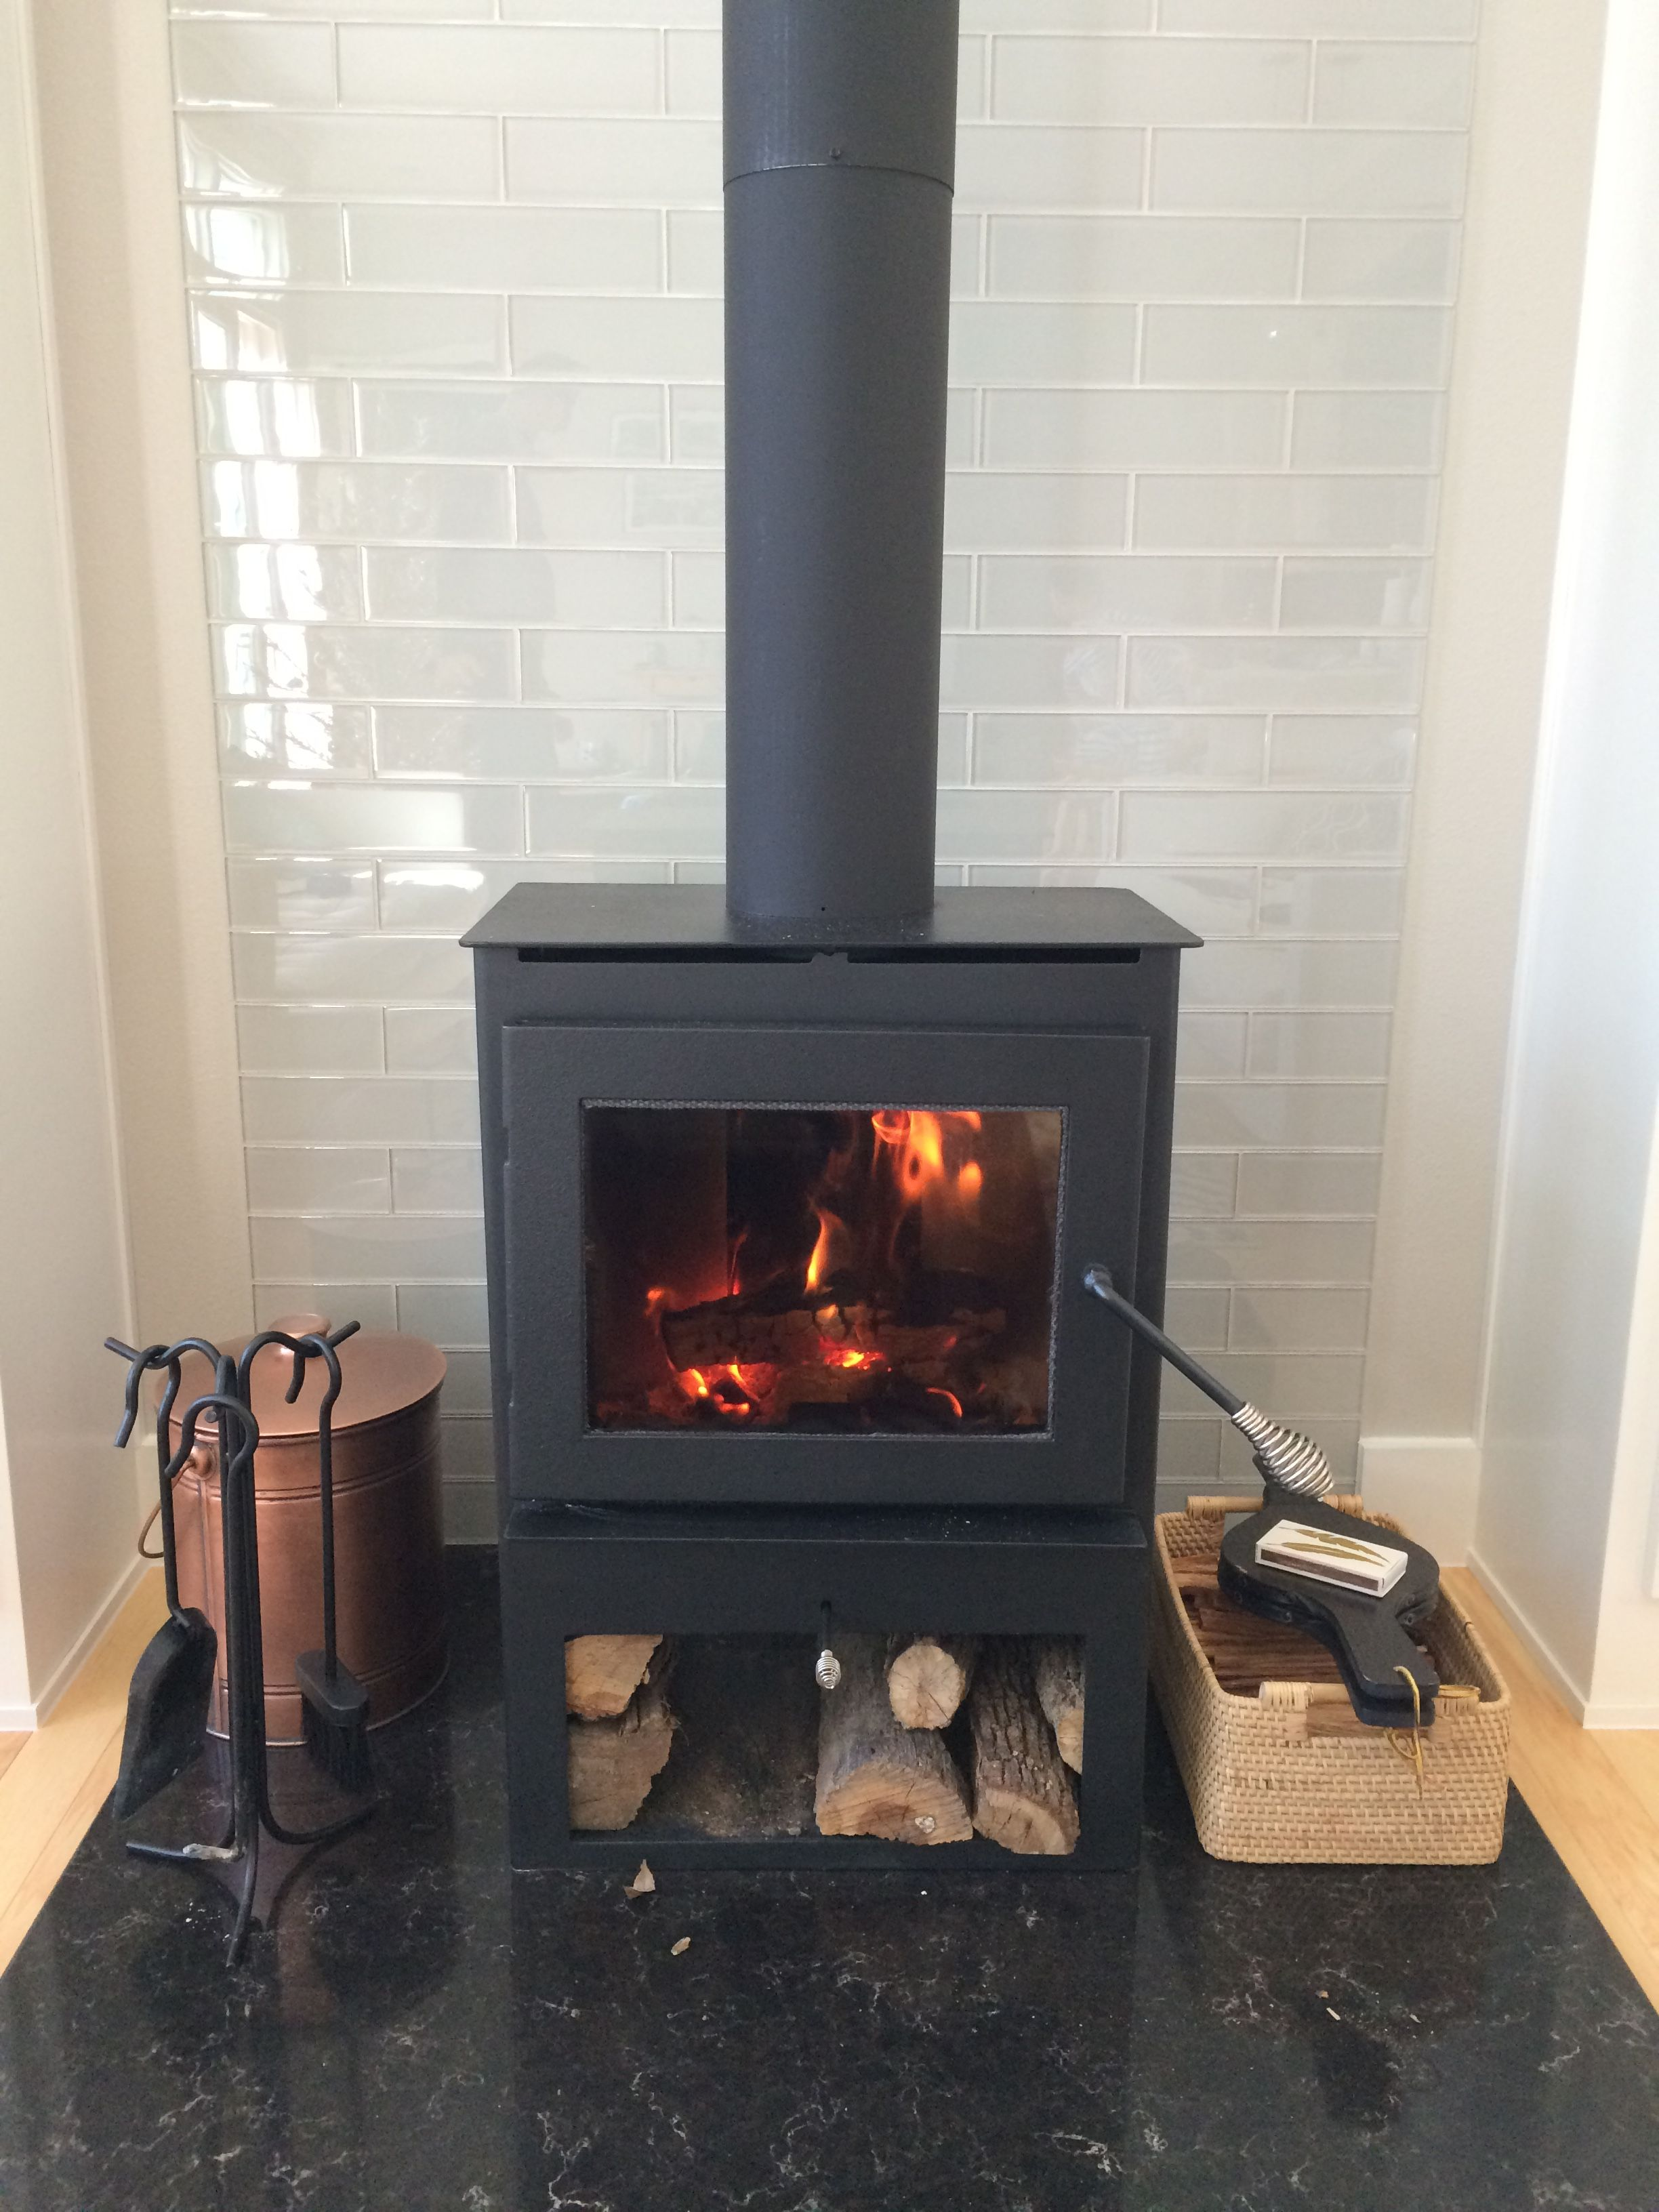 Wood Burning Stove With Glass 3x12 Tile Behind Wood Burning Stove Wood Stove Fireplace Corner Wood Stove